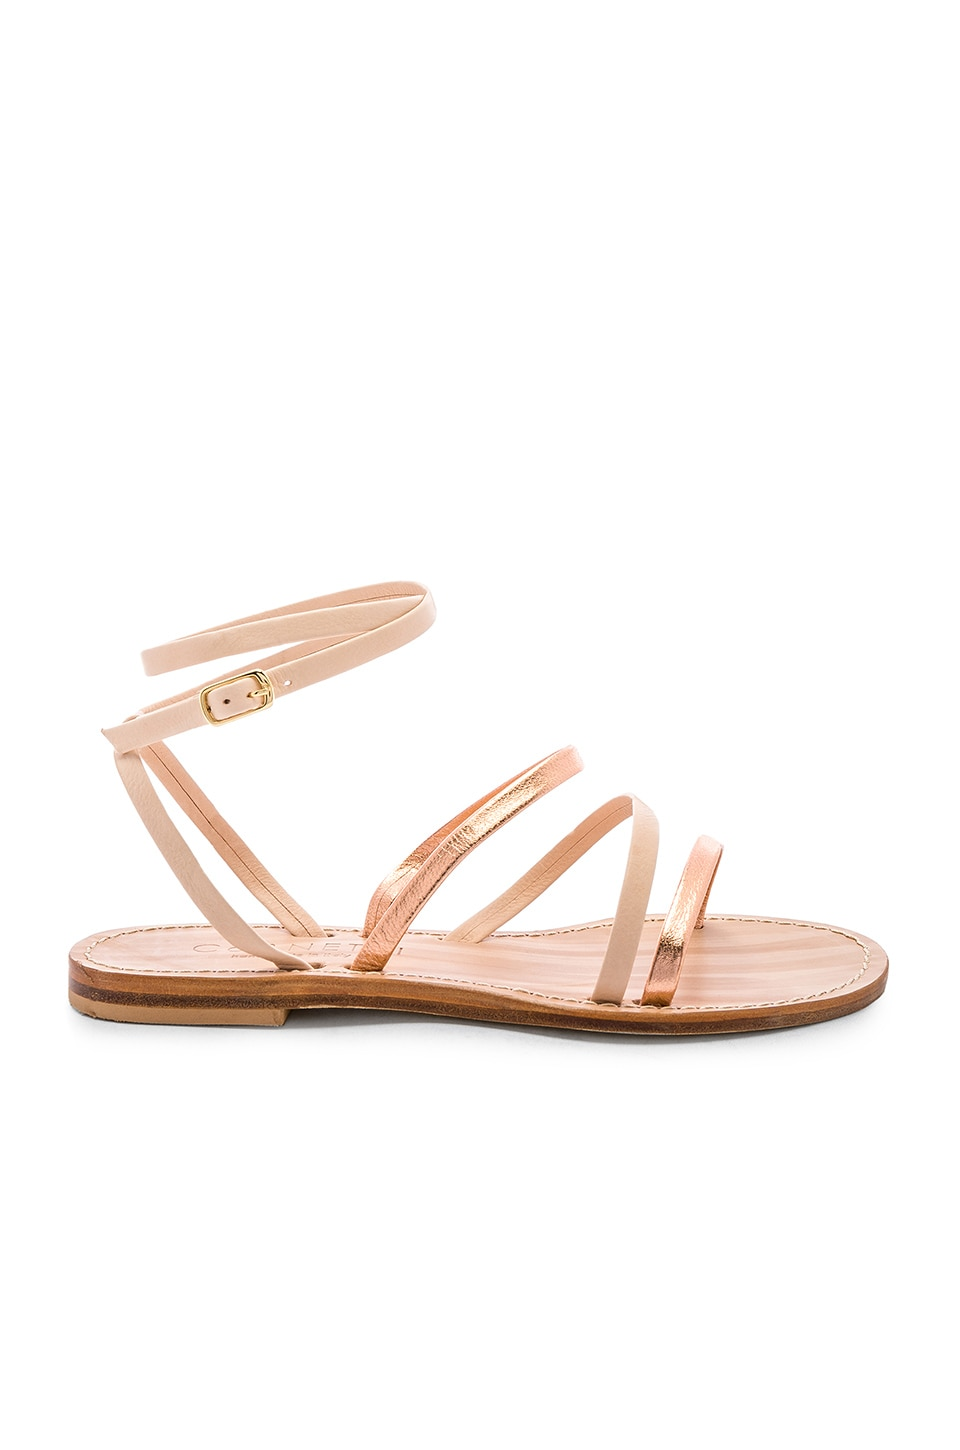 CoRNETTI Lipari Sandal in Rose Gold & Natural Calfskin